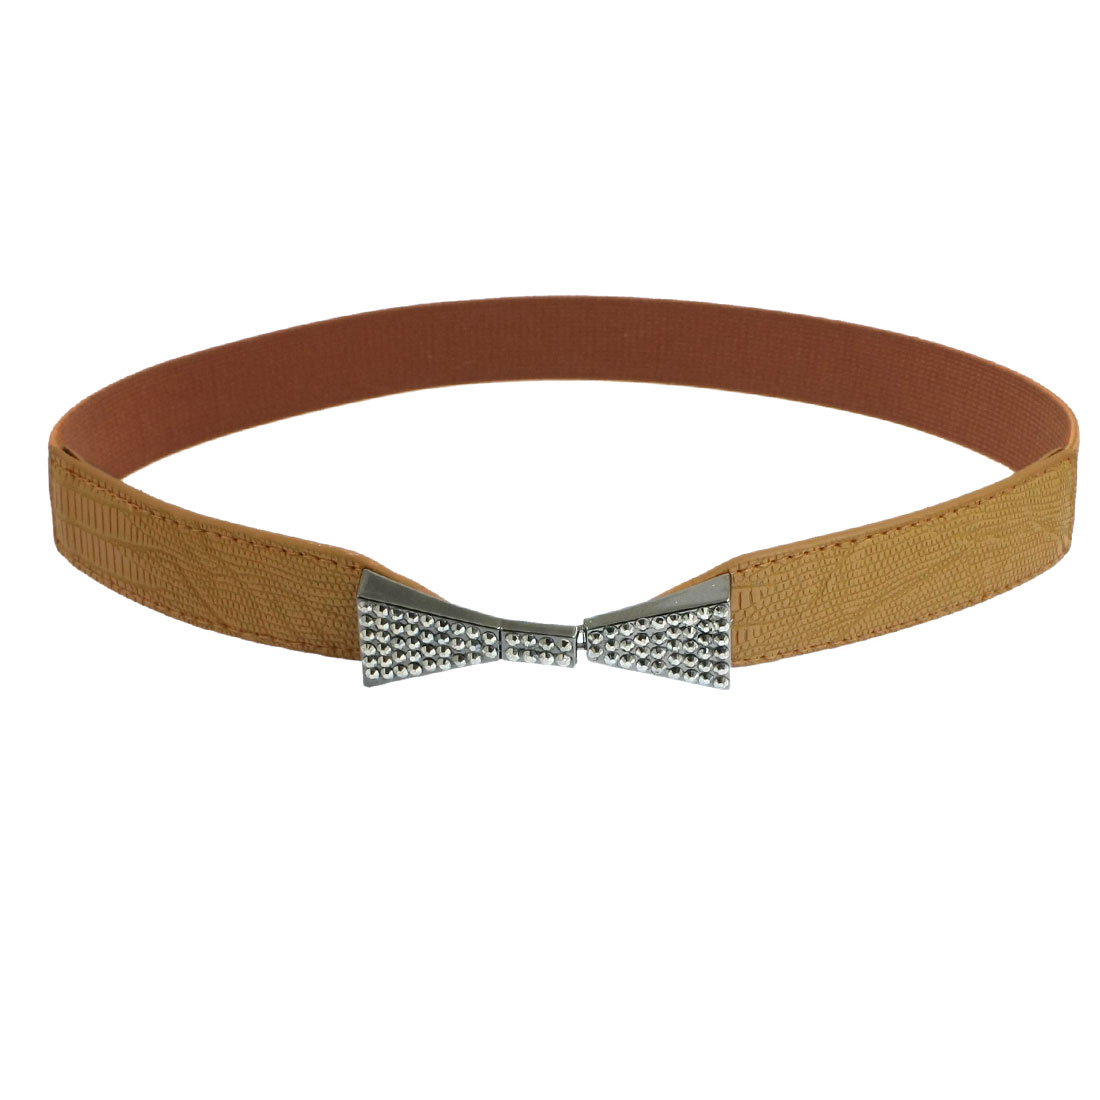 Lady Rhinestone Inlaid Detail Bowknot Elastic Band Cinch Waist Belt Brown